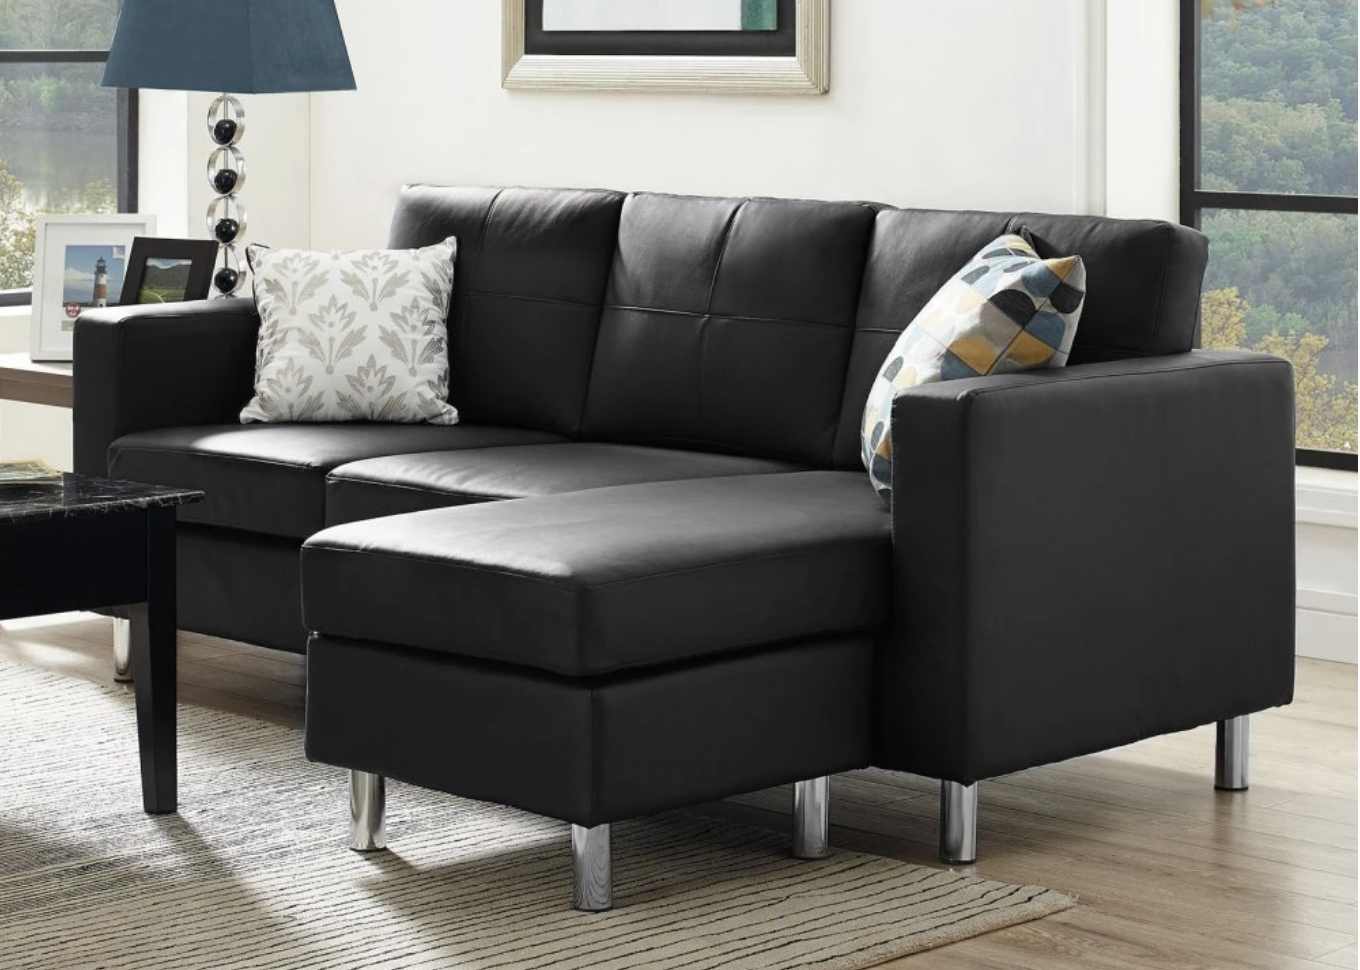 Current Sectional Sofas For Condos With Regard To 75 Modern Sectional Sofas For Small Spaces (2018) (View 2 of 20)